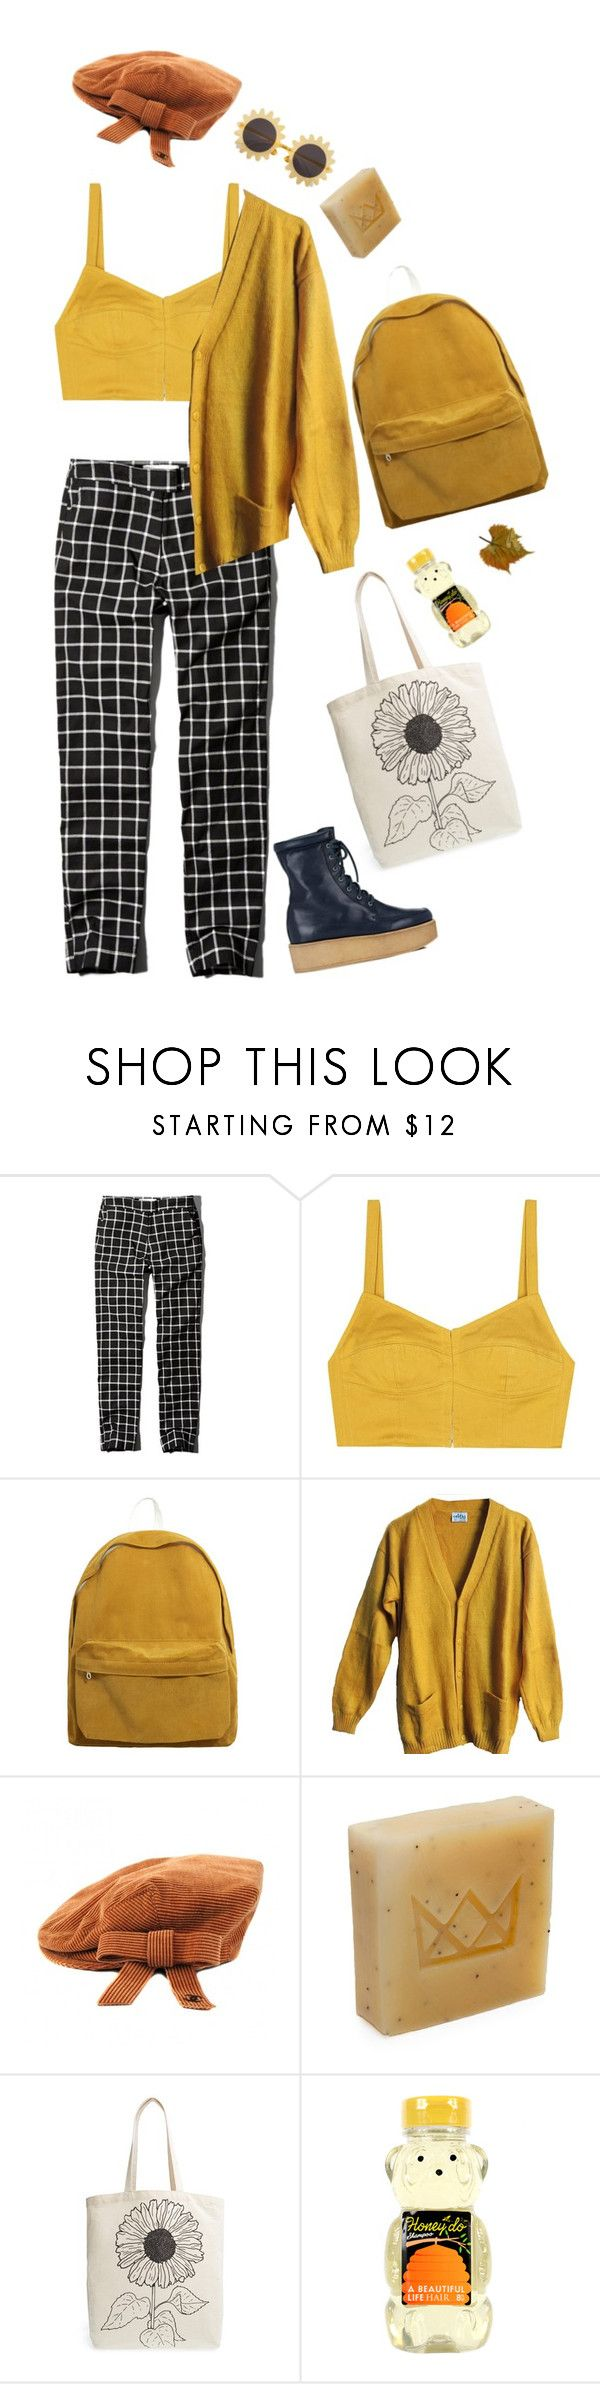 """""""Untitled #2532"""" by momoheart ❤ liked on Polyvore featuring Abercrombie & Fitch, Isa Arfen, H&M, Chanel, Flynn&King, Tri-coastal Design and Gabriela Hearst"""